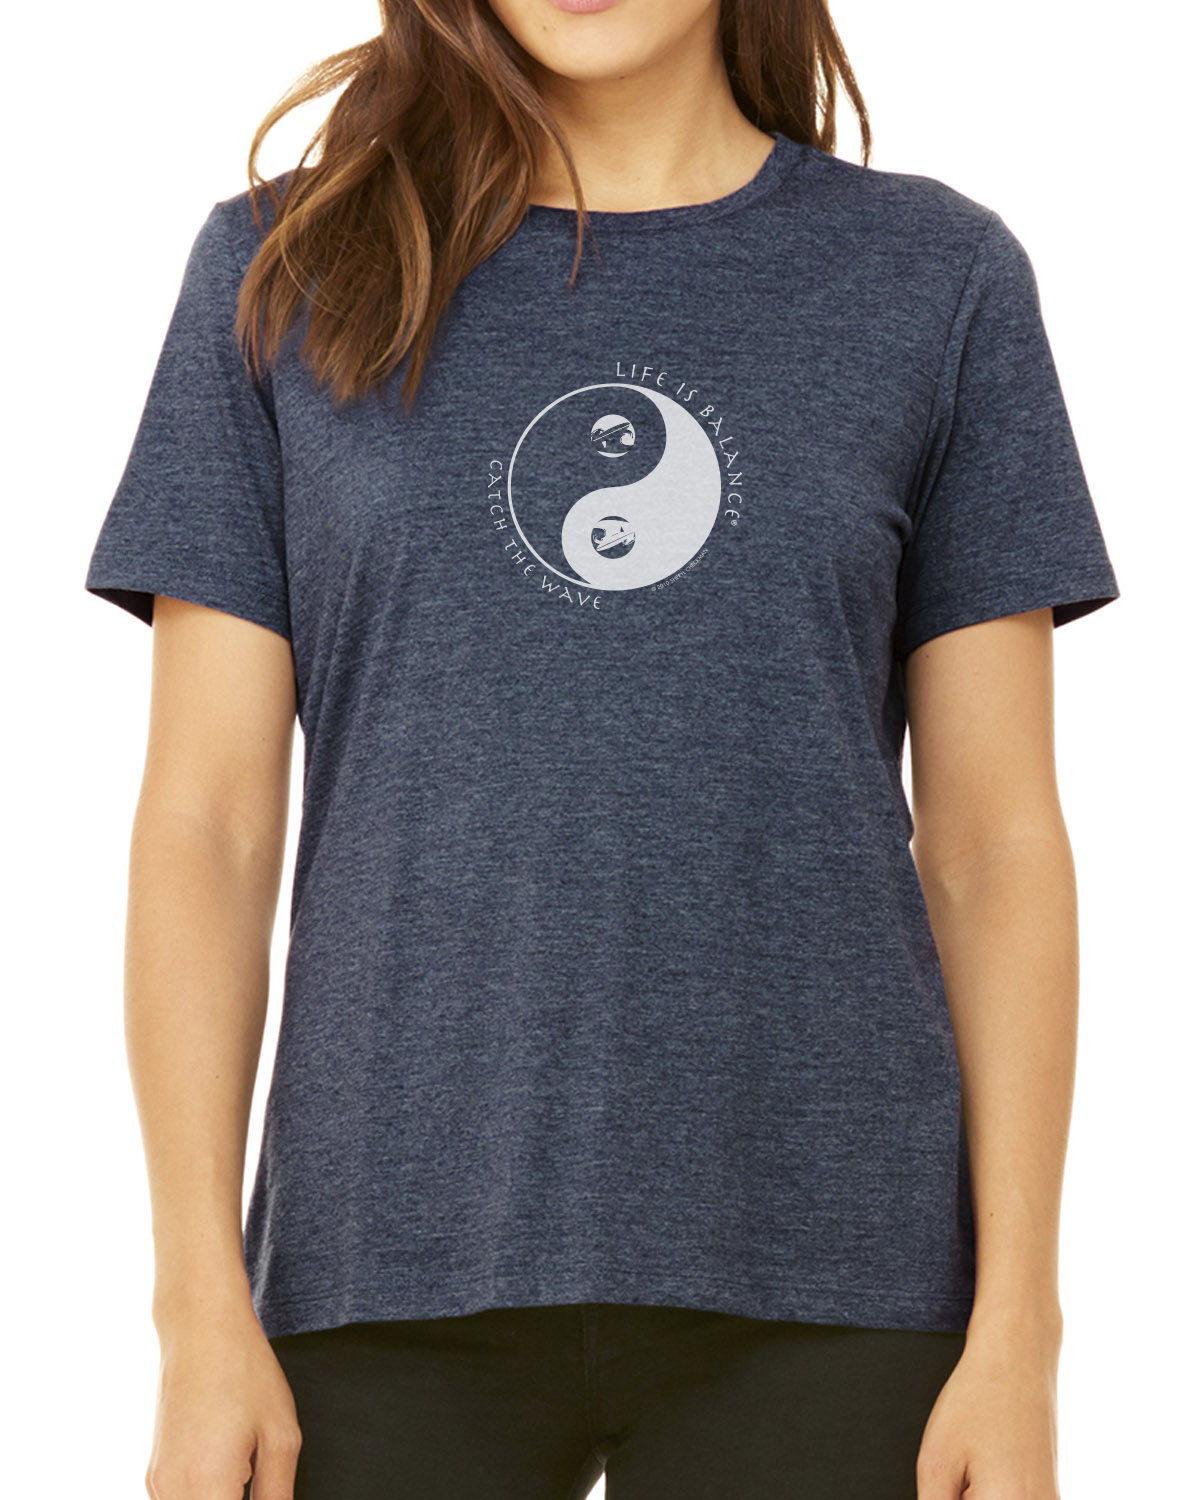 Women's short sleeve surfing t-shirt (heather navy)